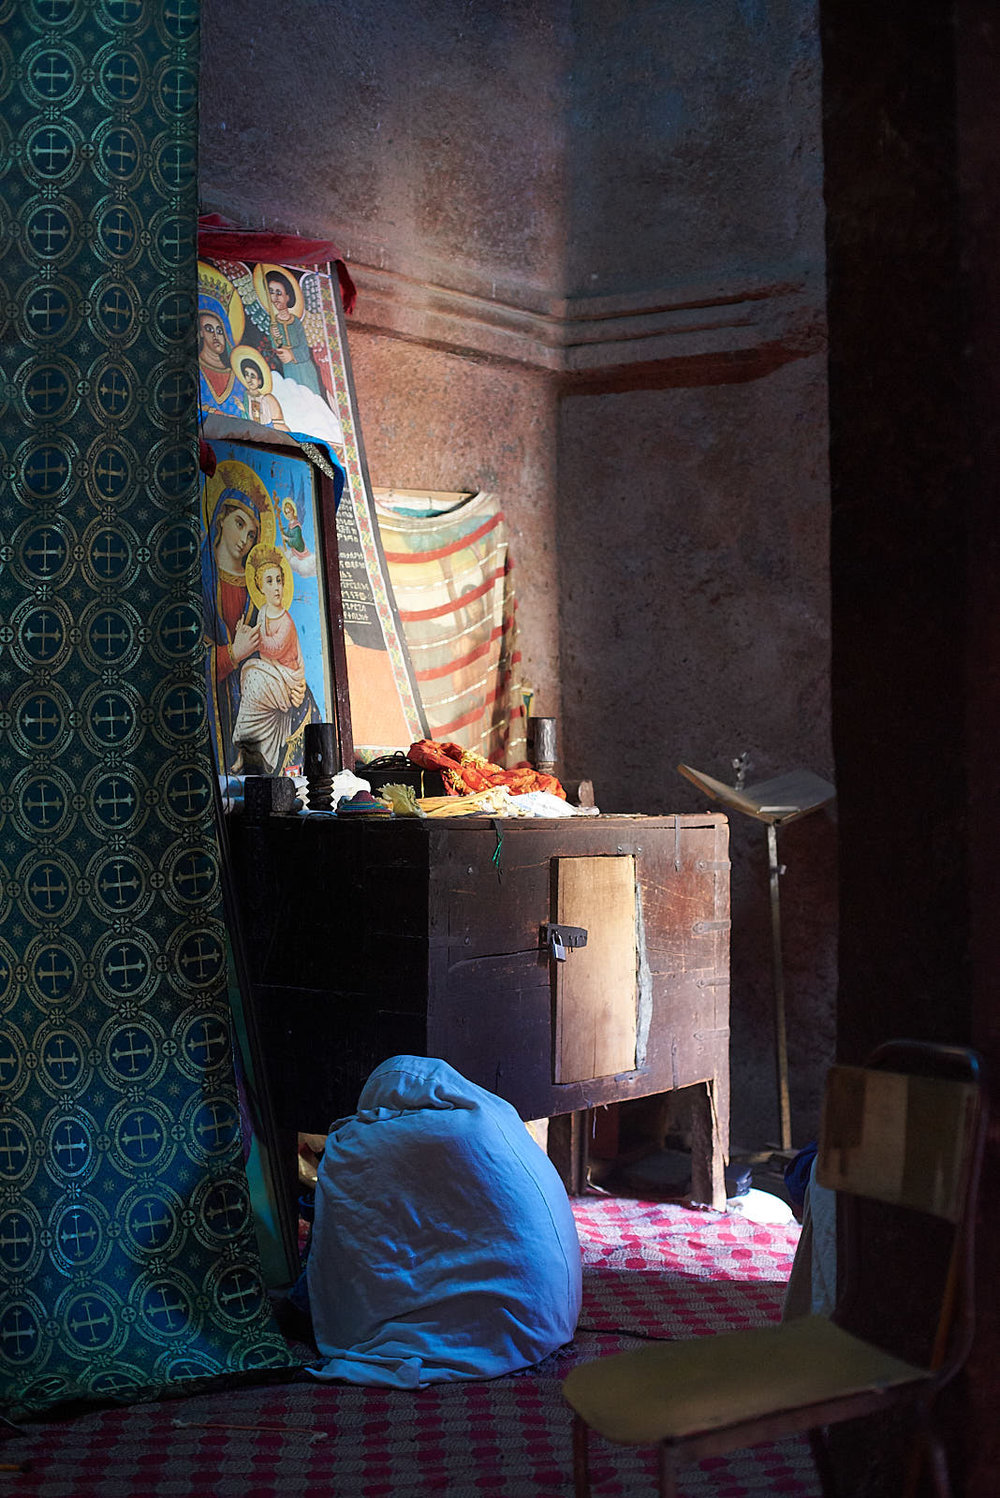 Ethiopian Orthodox pilgrim worshiping inside the Church of Saint George, Lalibela, Ethiopia.